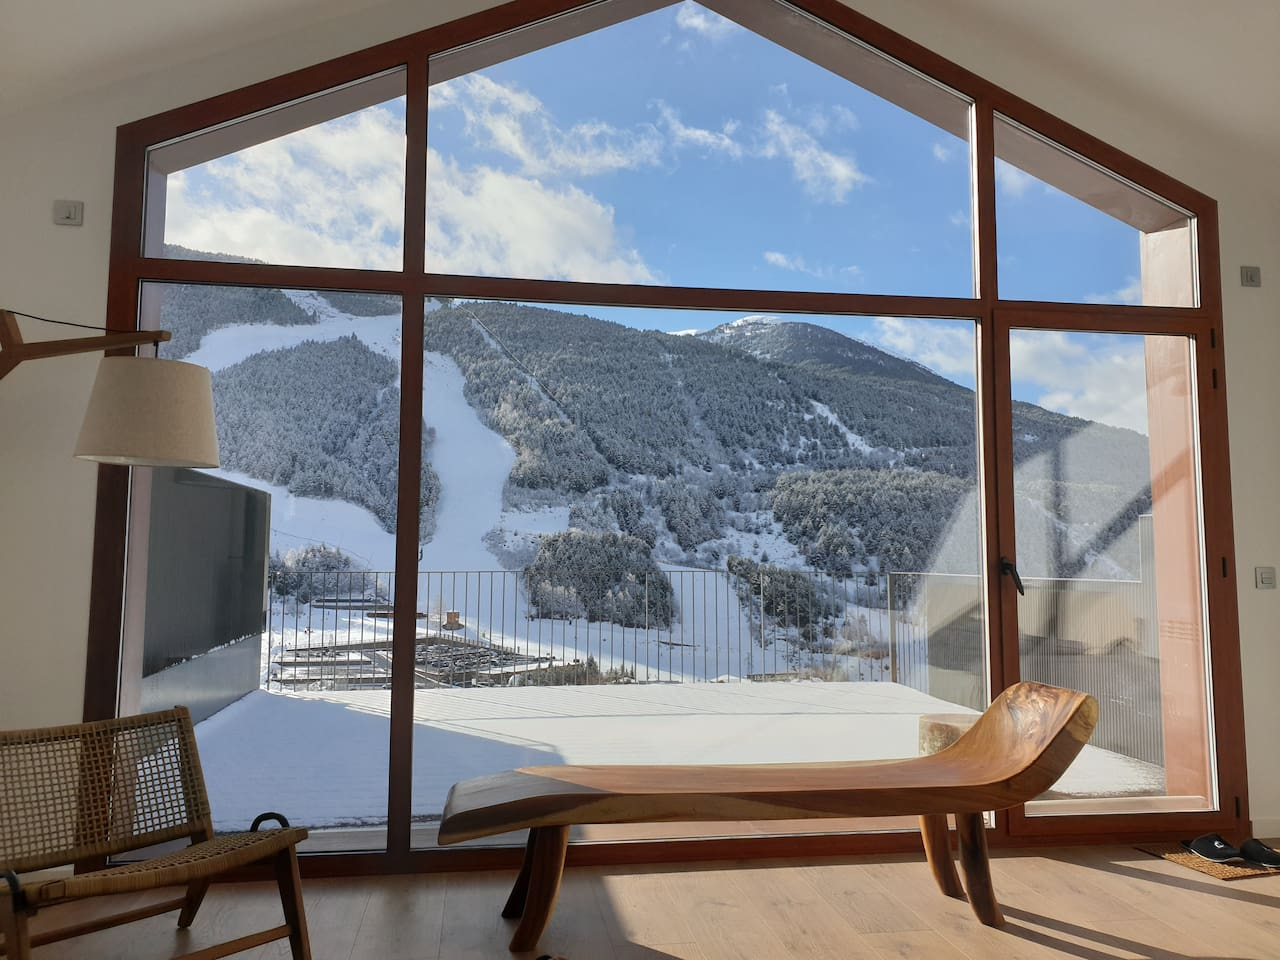 Modern 3 bedroom chalet on the hills of El Tarter with amazing views over the slopes of Grandvalira.  The living room features wall to wall and floor to ceiling windows, with access to a large private terrace.  Kabano Vacation Rentals Andorra